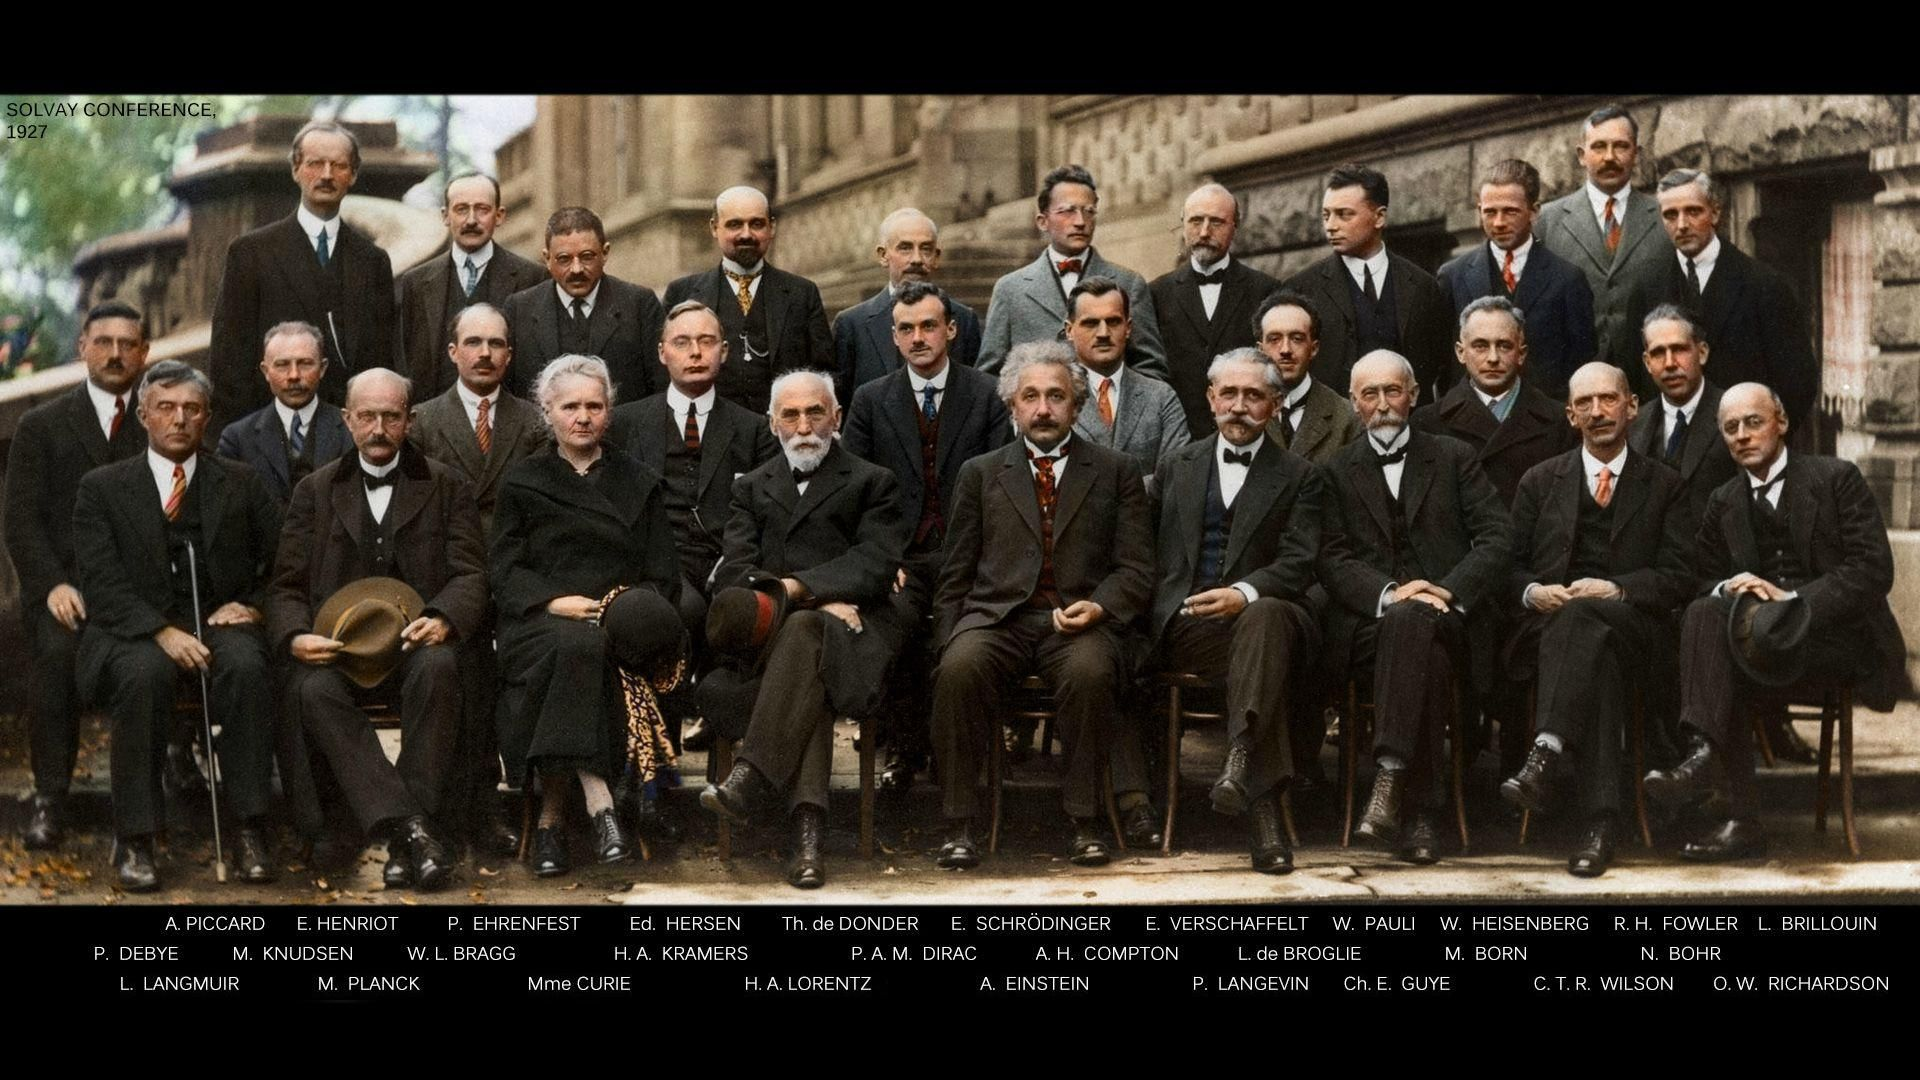 Solvay Conference, 1927.